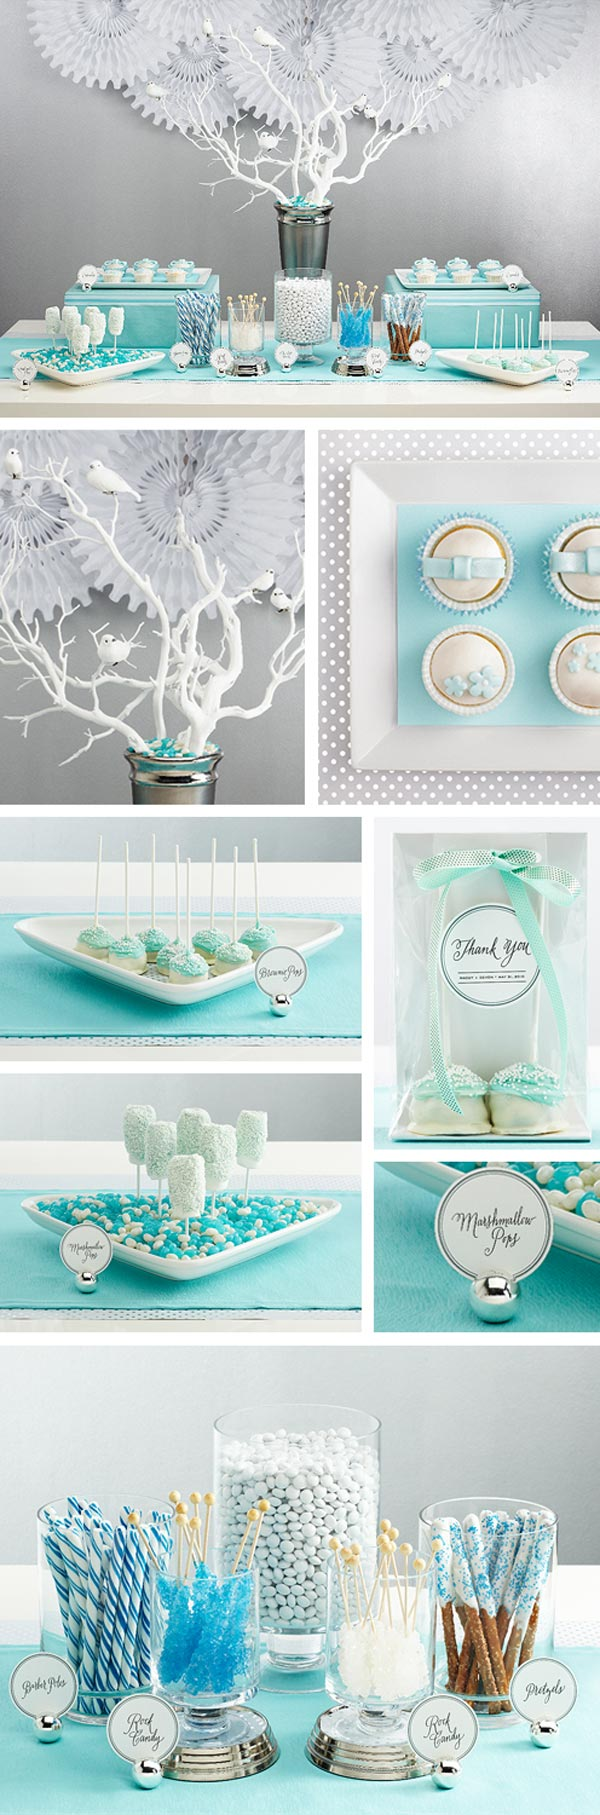 Baby shower decor ideas arhitektura for Baby shower decoration pictures ideas